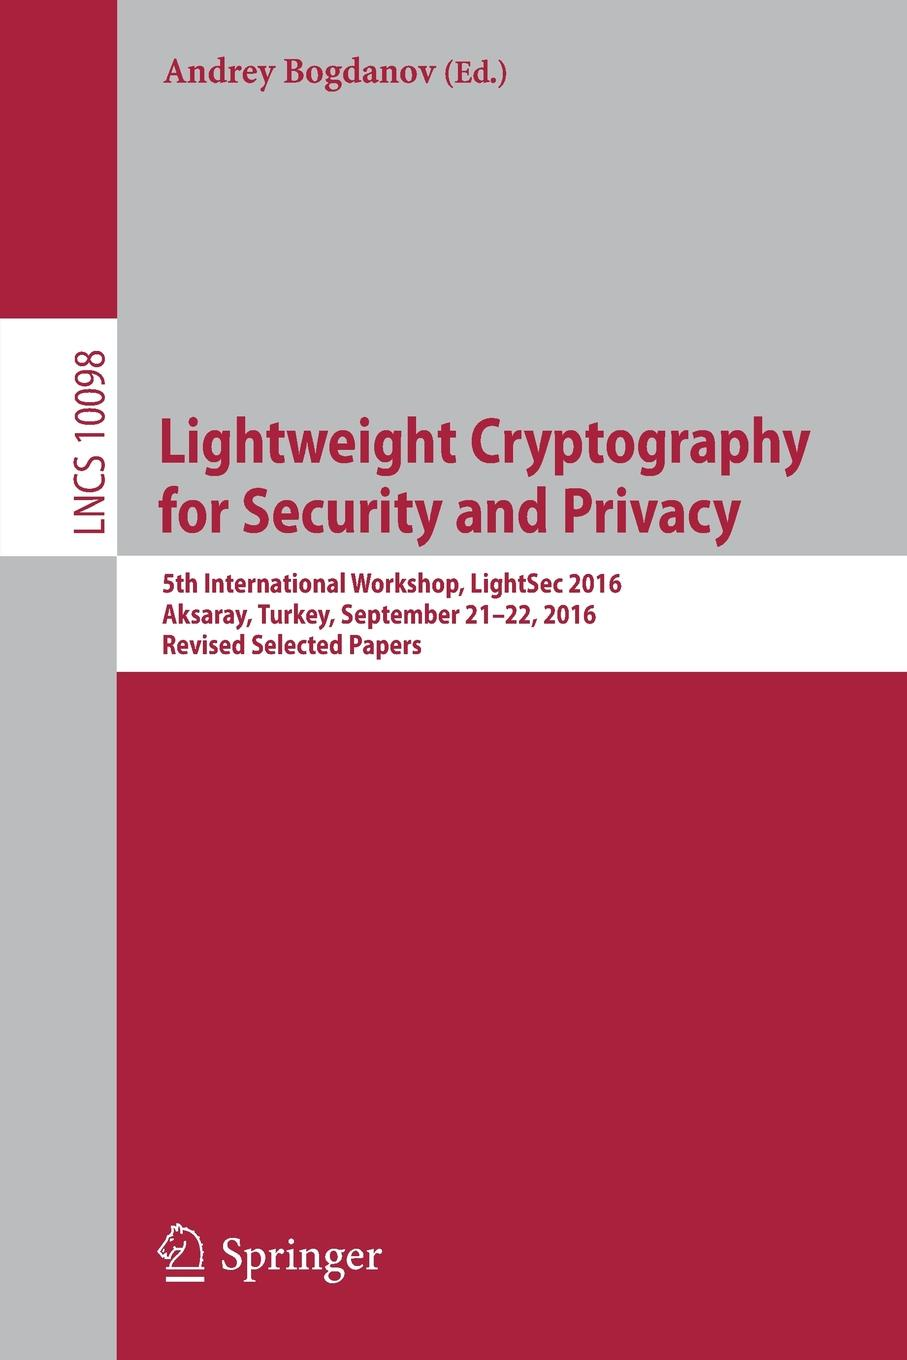 Lightweight Cryptography for Security and Privacy. 5th International Workshop, LightSec 2016, Aksaray, Turkey, September 21-22, 2016, Revised Selected Papers cyber security and privacy third cyber security and privacy eu forum csp forum 2014 athens greece may 21 22 2014 revised selected papers